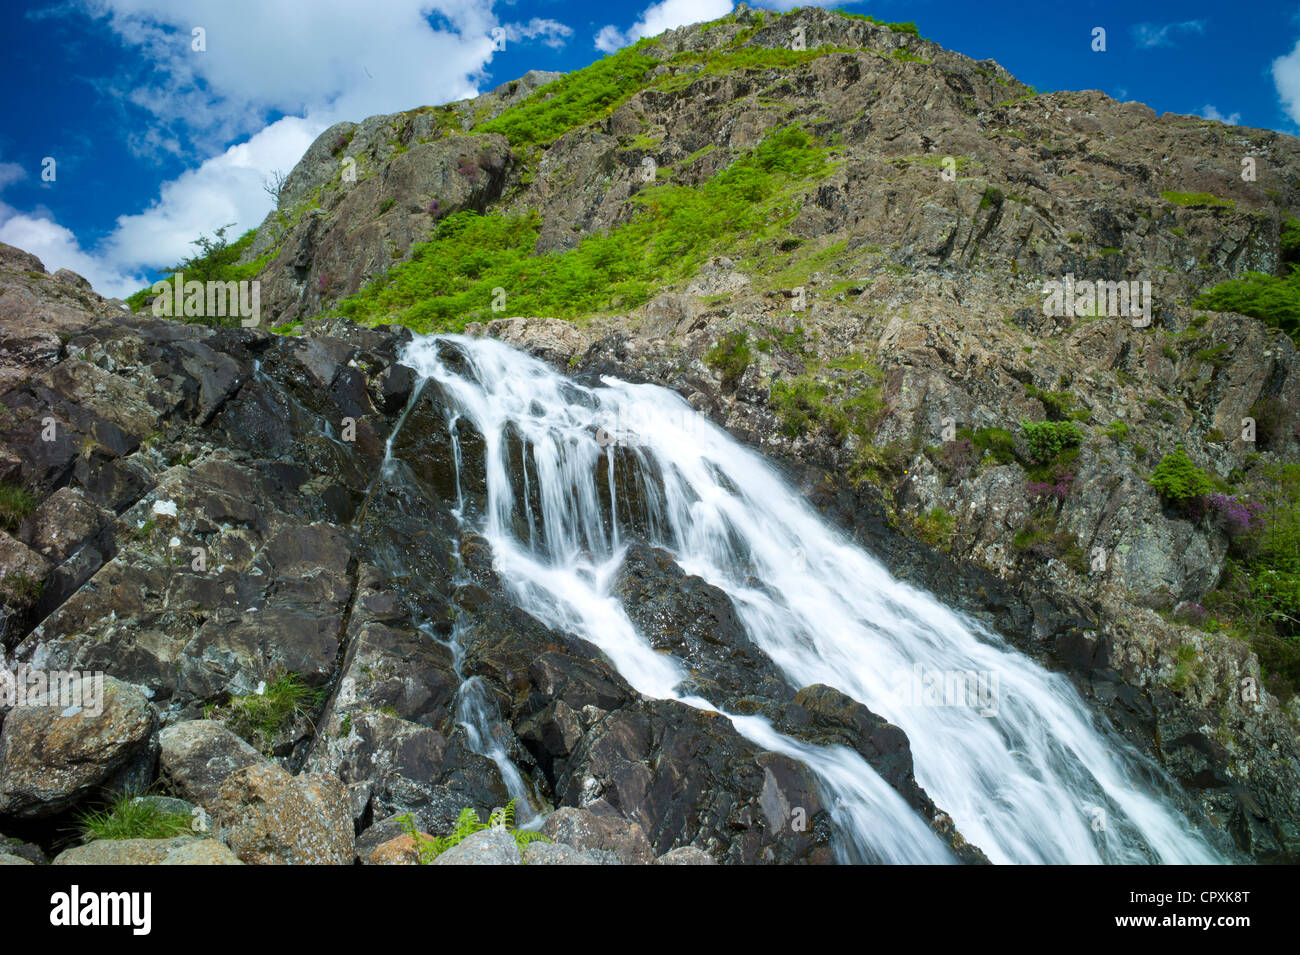 Lakeland countryside and waterfall ghyll at Easedale in the Lake District National Park, Cumbria, UK - Stock Image